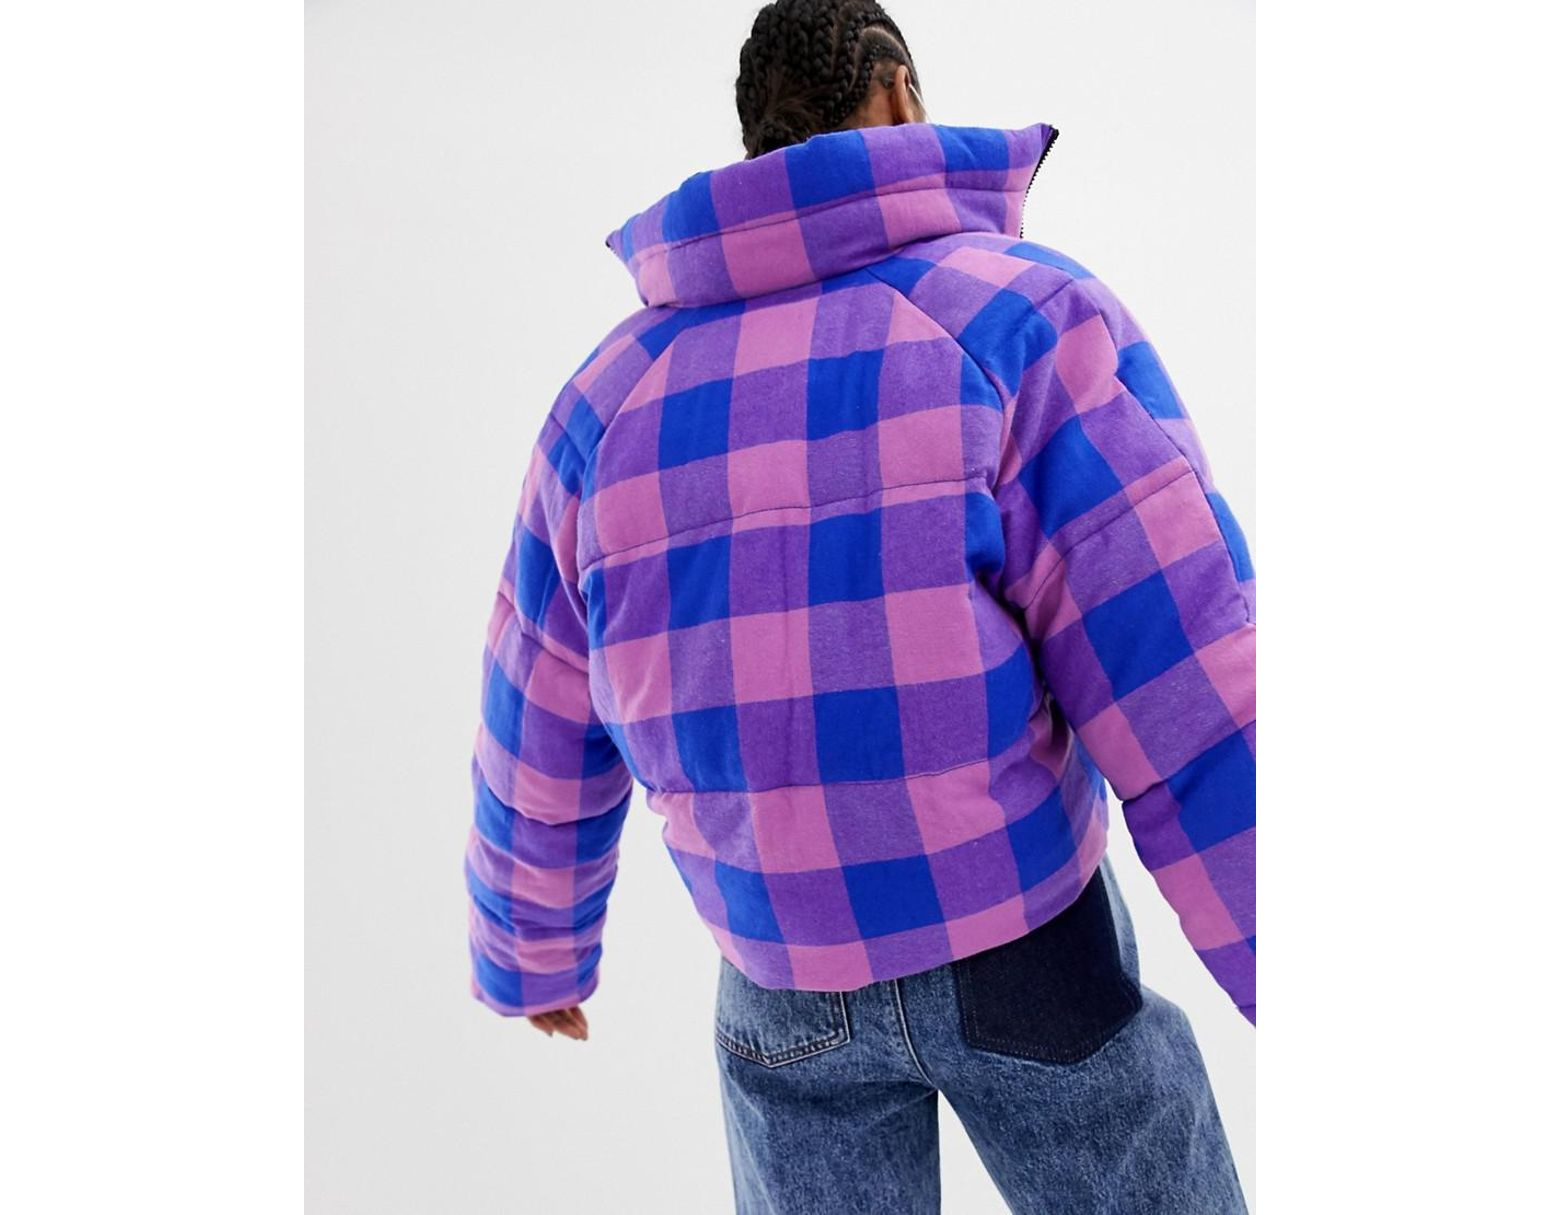 57f74713a16f Collusion Tall High Shine Reversible Puffer Jacket - Lyst